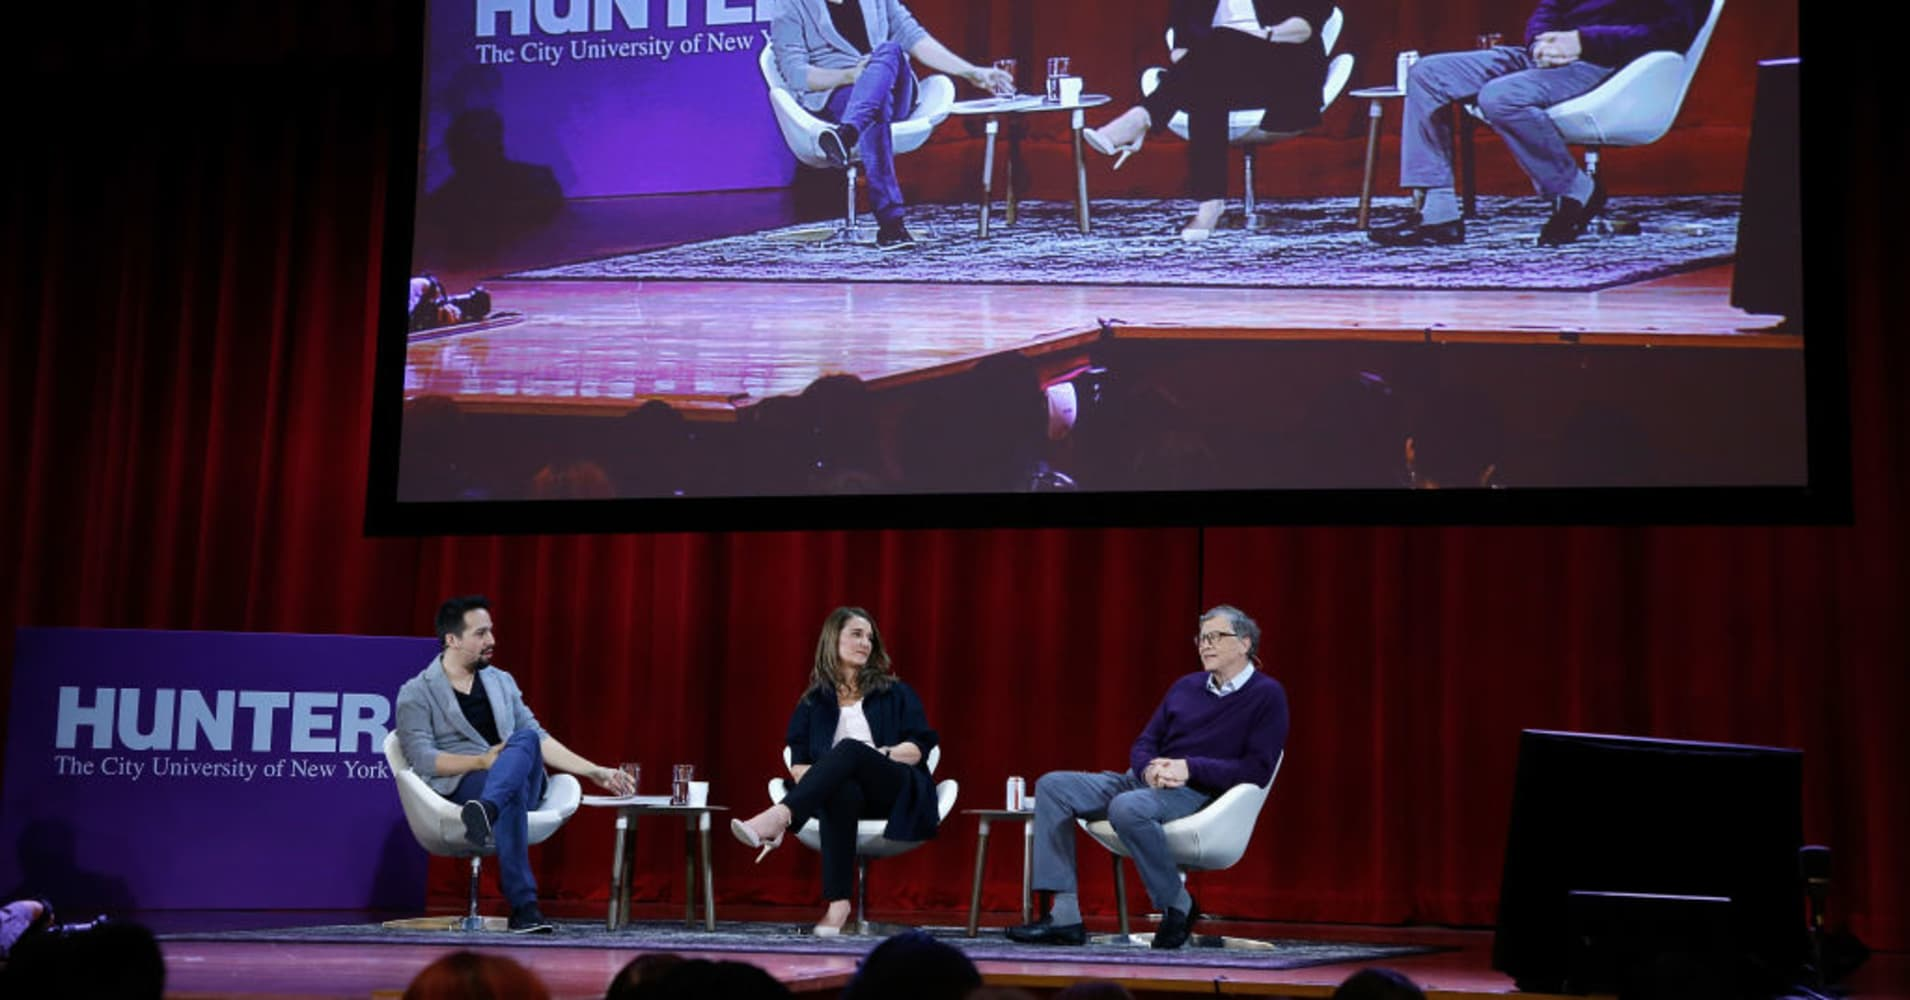 Lin-Manuel Miranda, Melinda Gates and Bill Gates speak during the panel at Hunter College on February 13, 2018 in New York City.